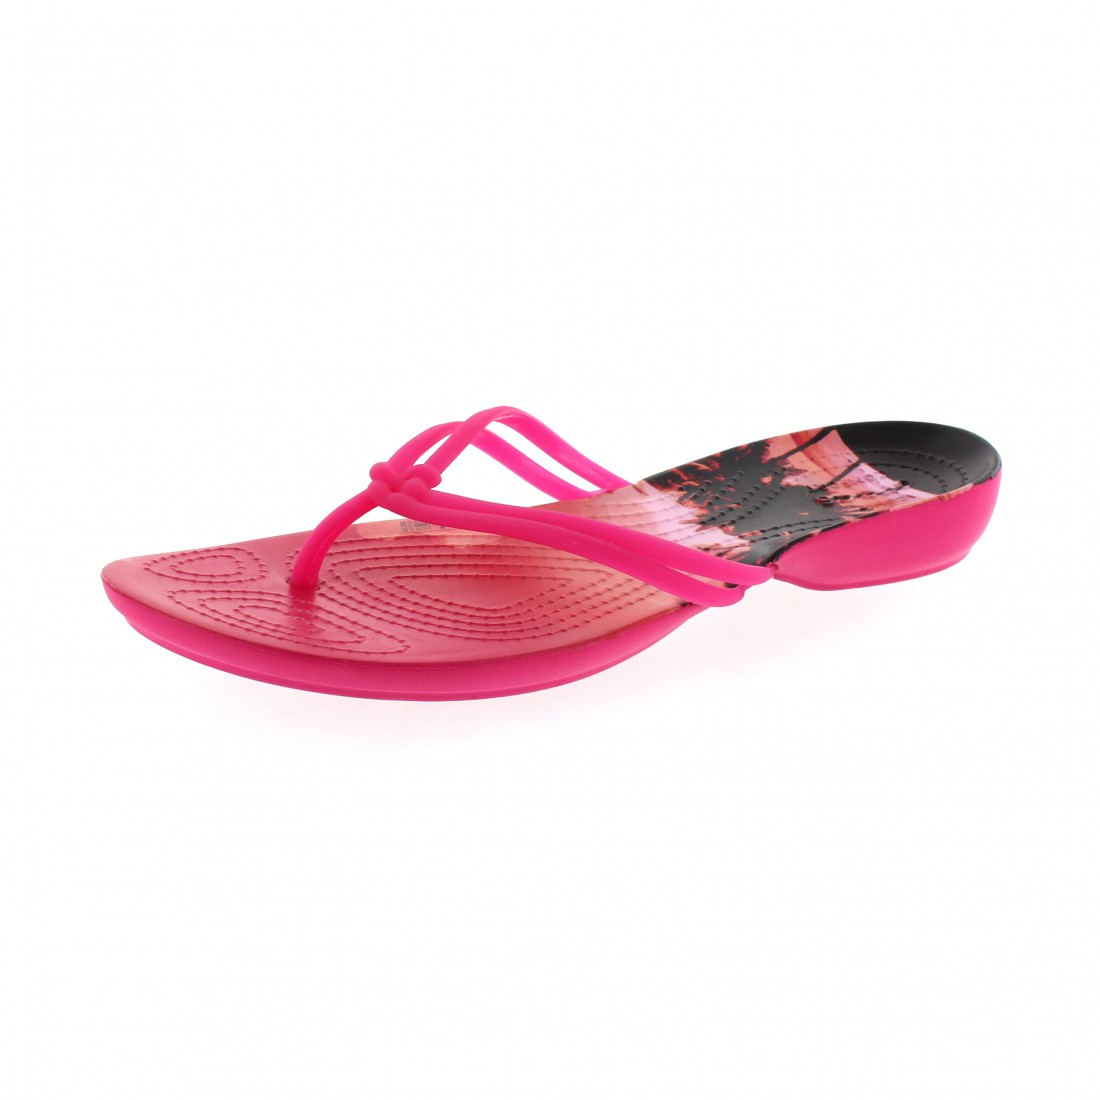 CROCS - ISABELLA GRAPHIC FLIP - candy pink tropical